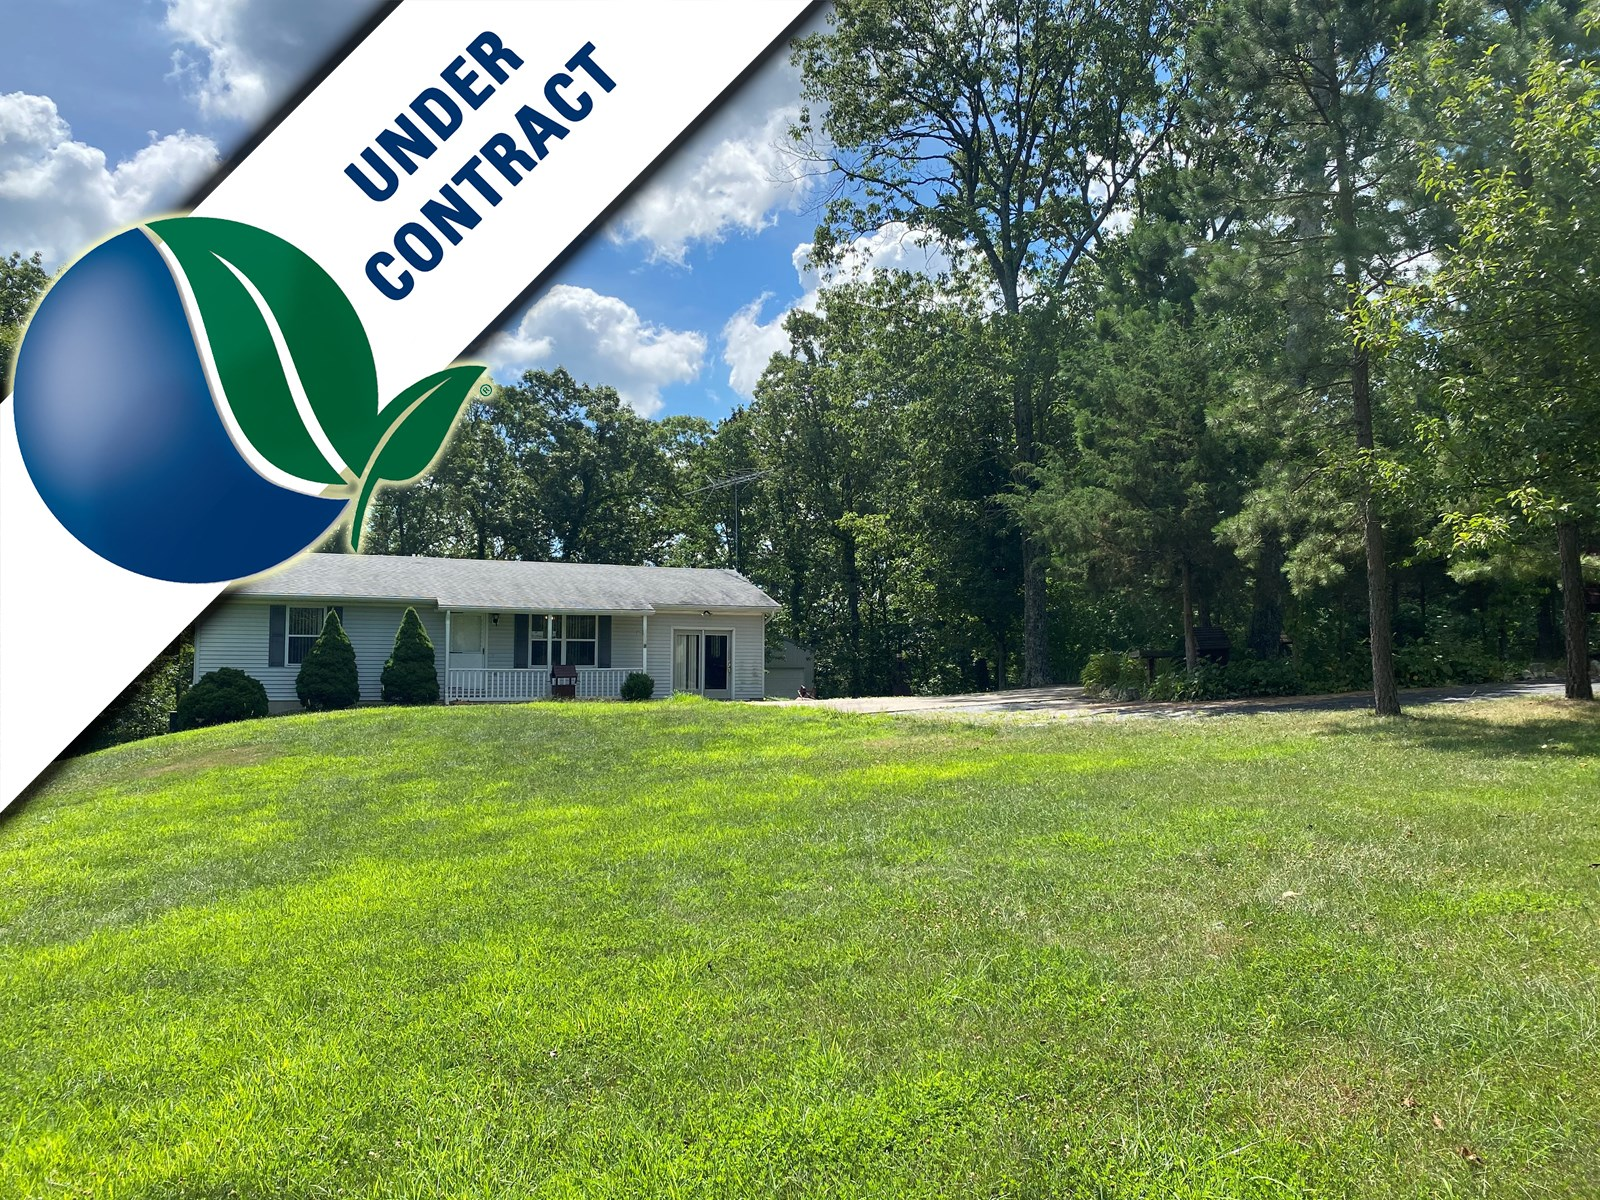 Charming Country Family Home For Sale South of Swiss, MO!